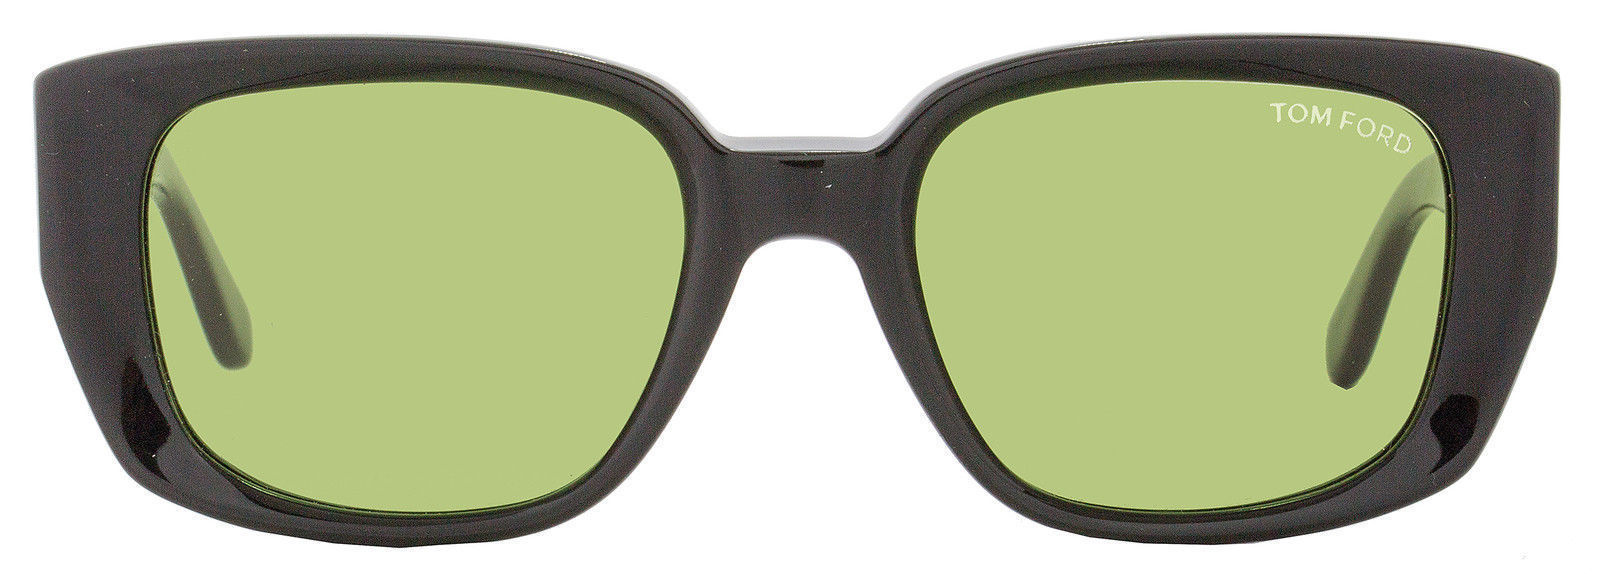 TOM FORD Raphael Black/Green Rectangular Sunglasses (T492 01N 52MM)